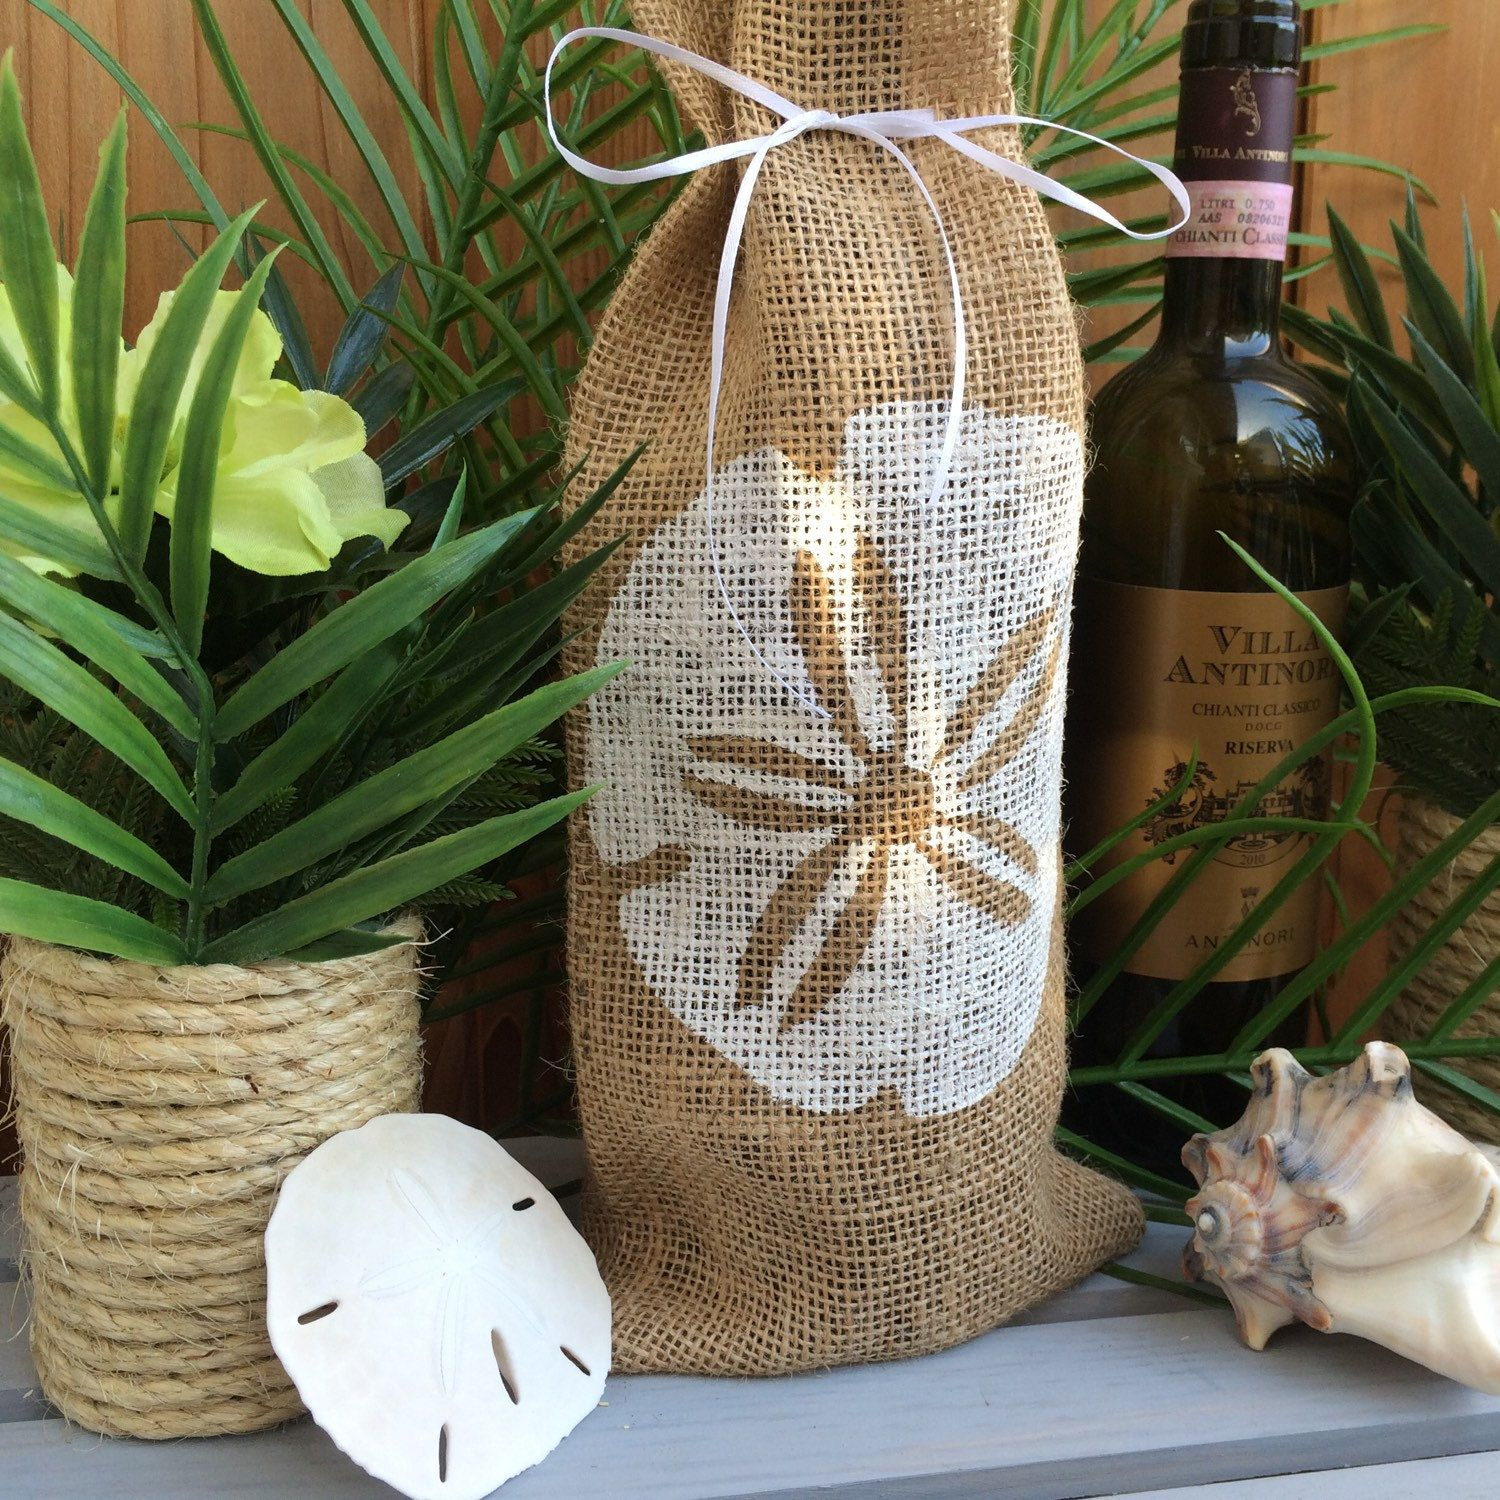 New Sand Dollar option for our wine/beer gift bag!